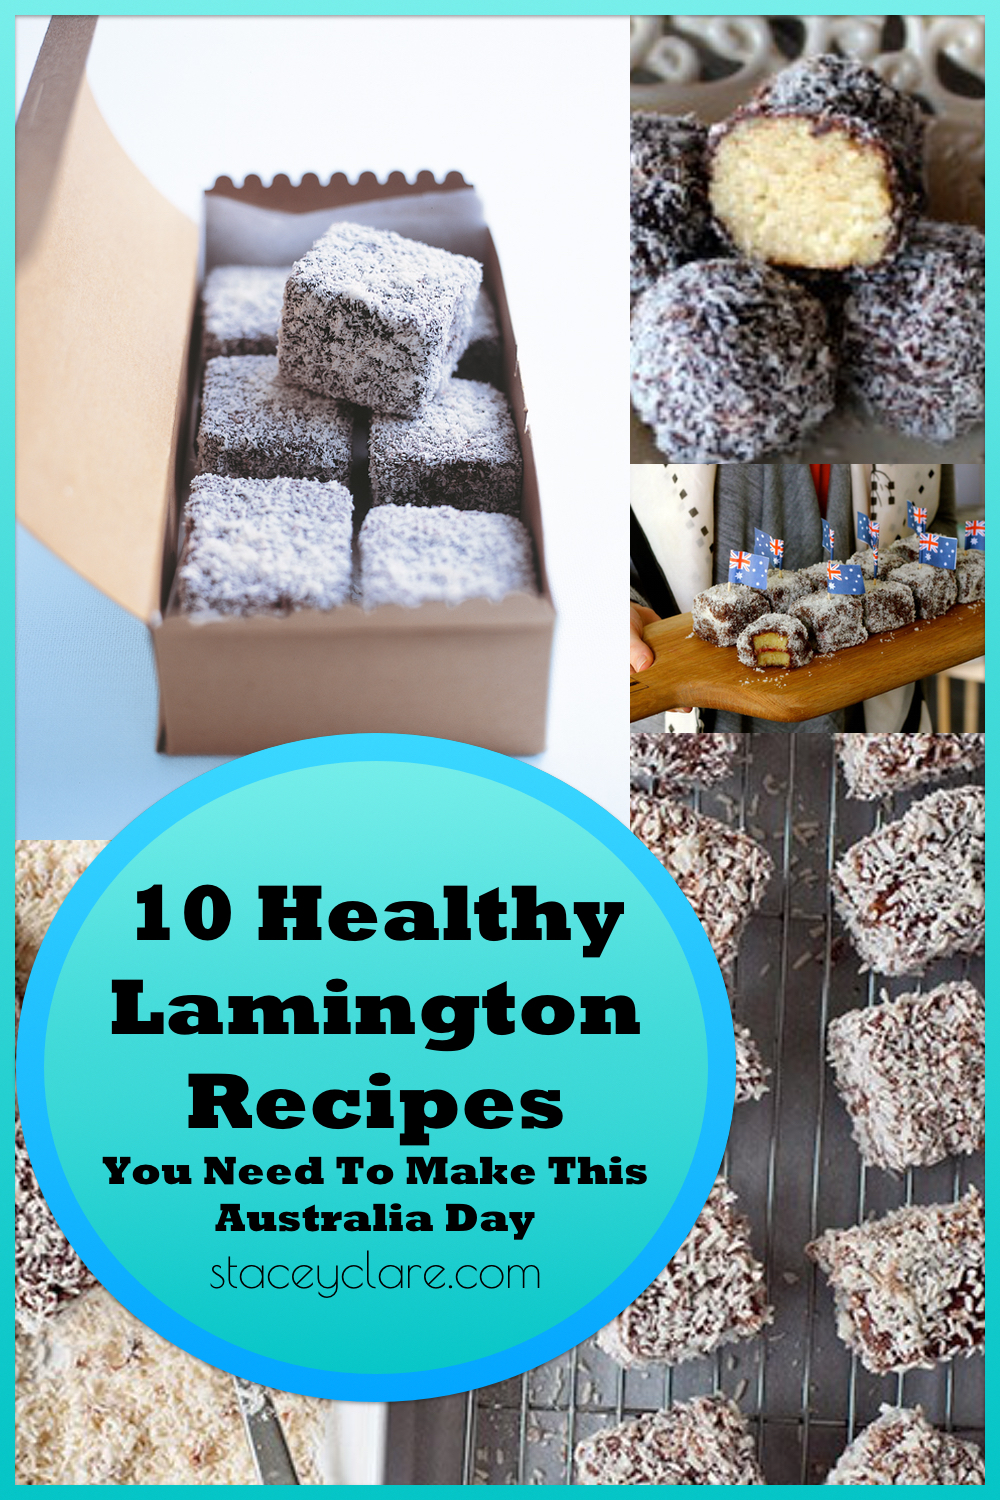 10 Healthy Lamington Recipes You Need To Make This Australia Day